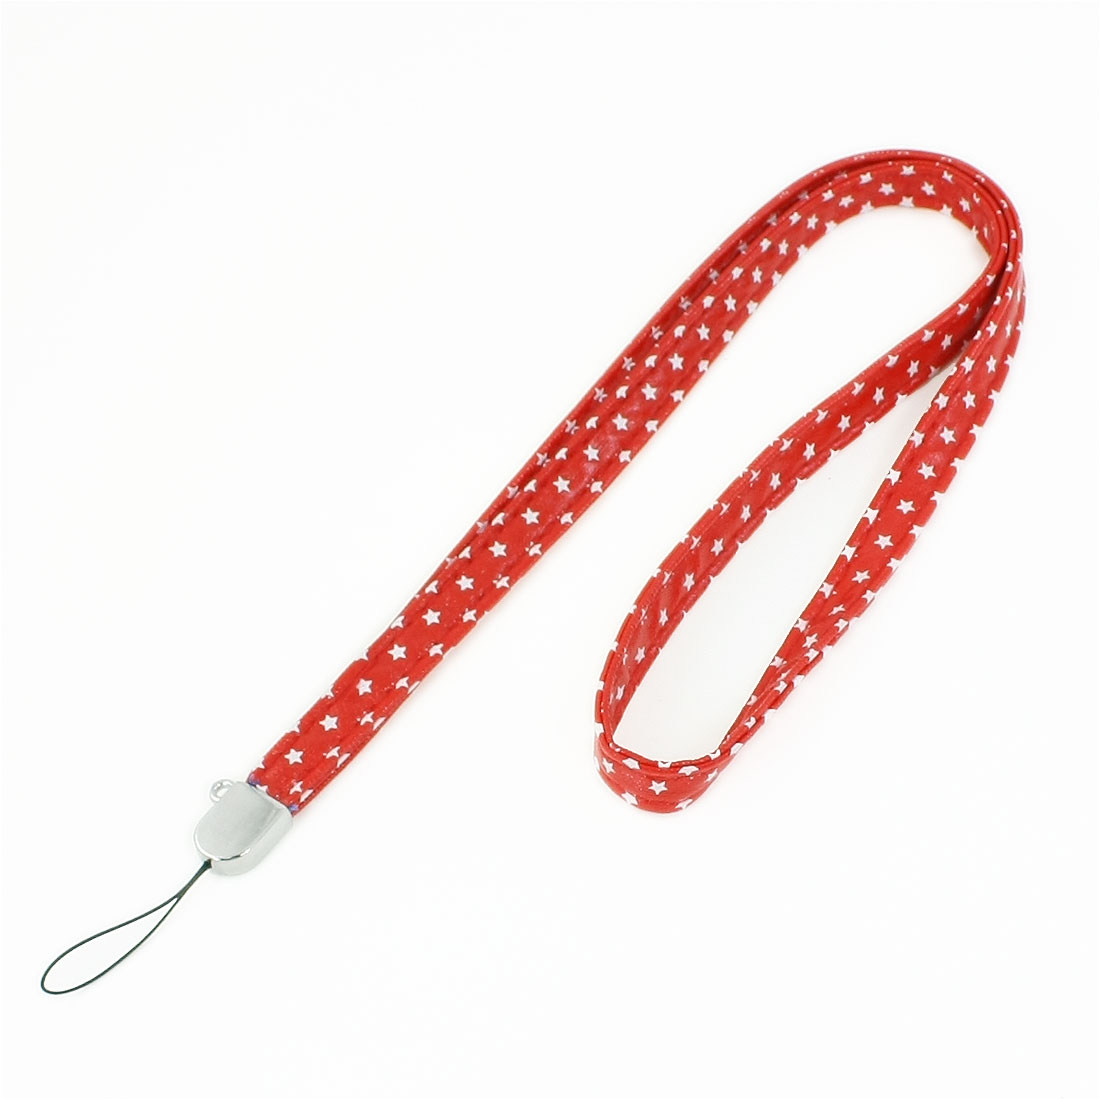 12mm Width White Star Printed Red Faux Leather Drawstring Lanyard for Phone